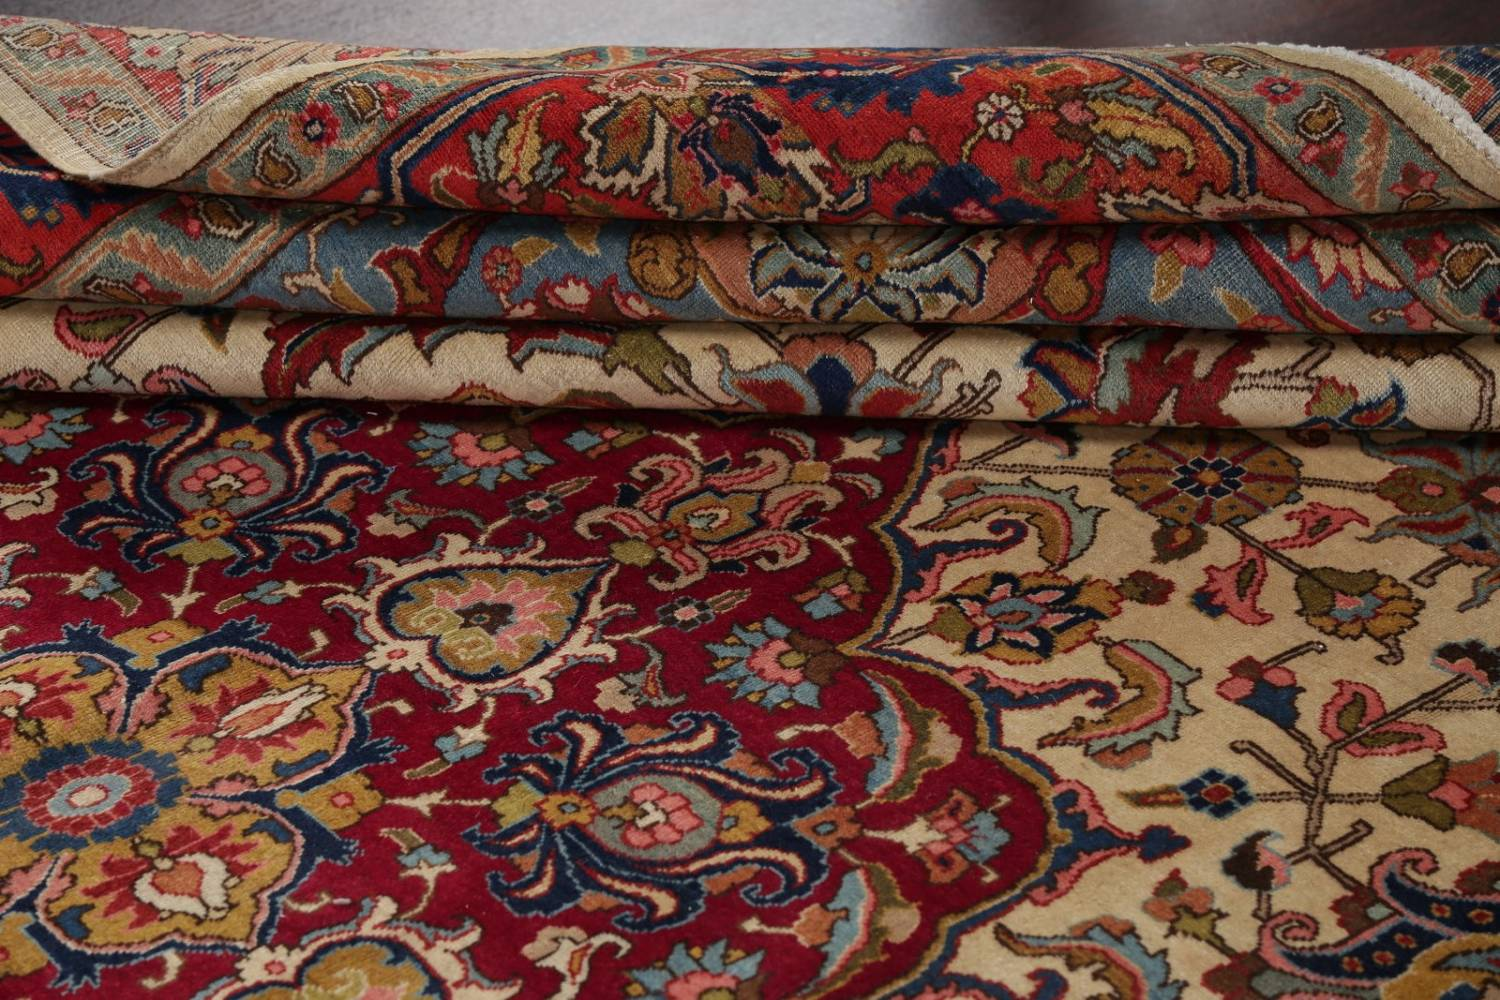 Antique Vegetable Dye Tabriz Persian Hand-Knotted Area Rug Wool 10x13 image 17